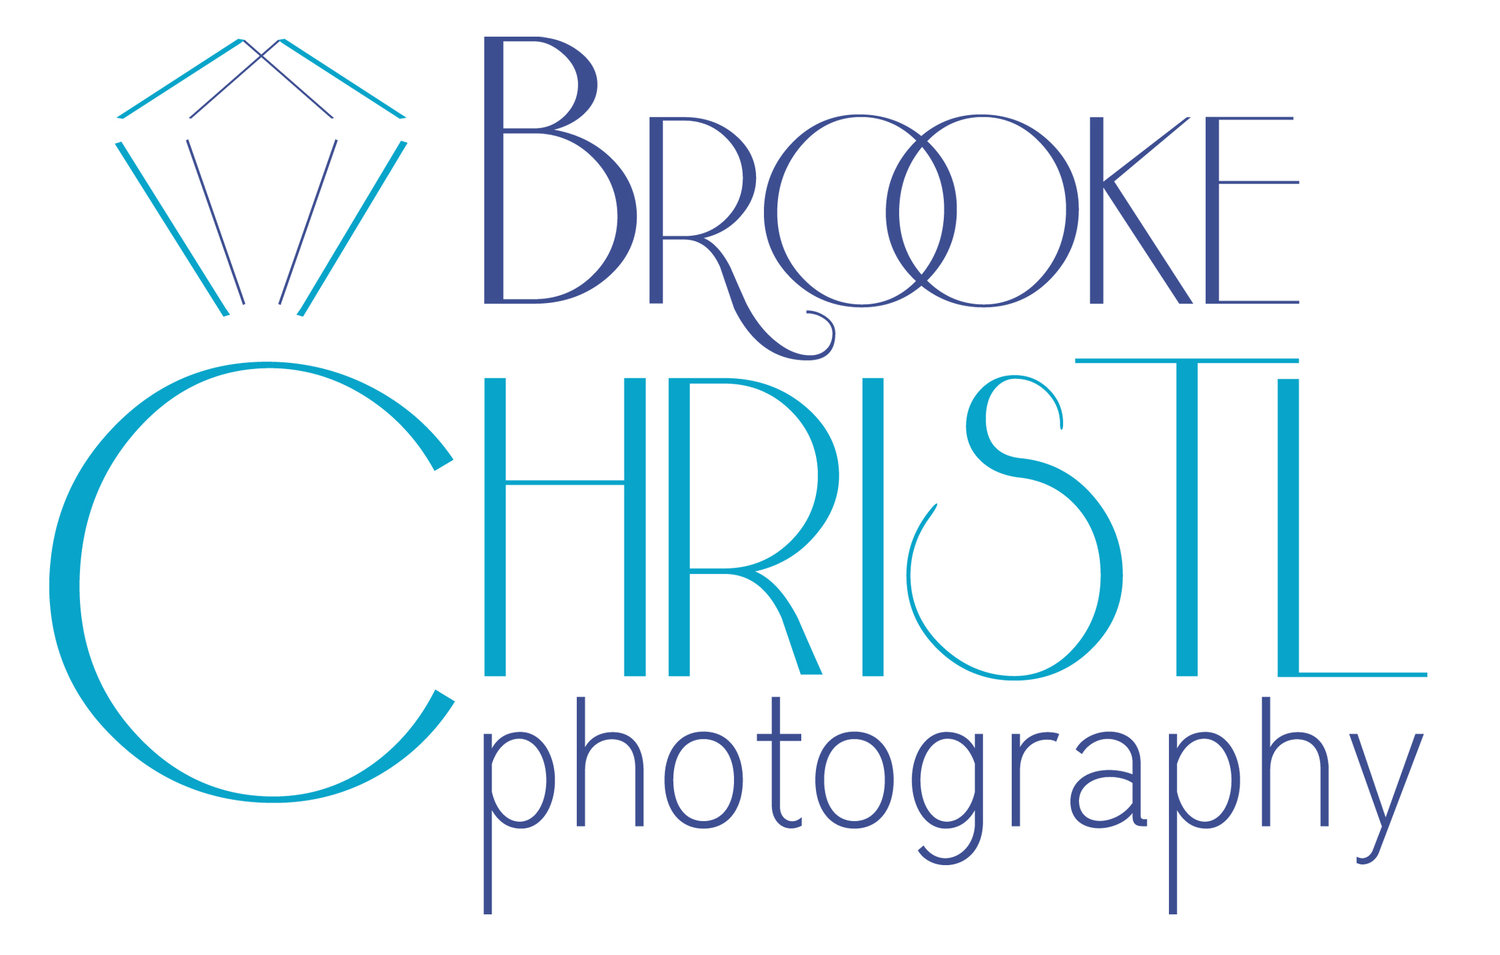 Brooke Christl Photography